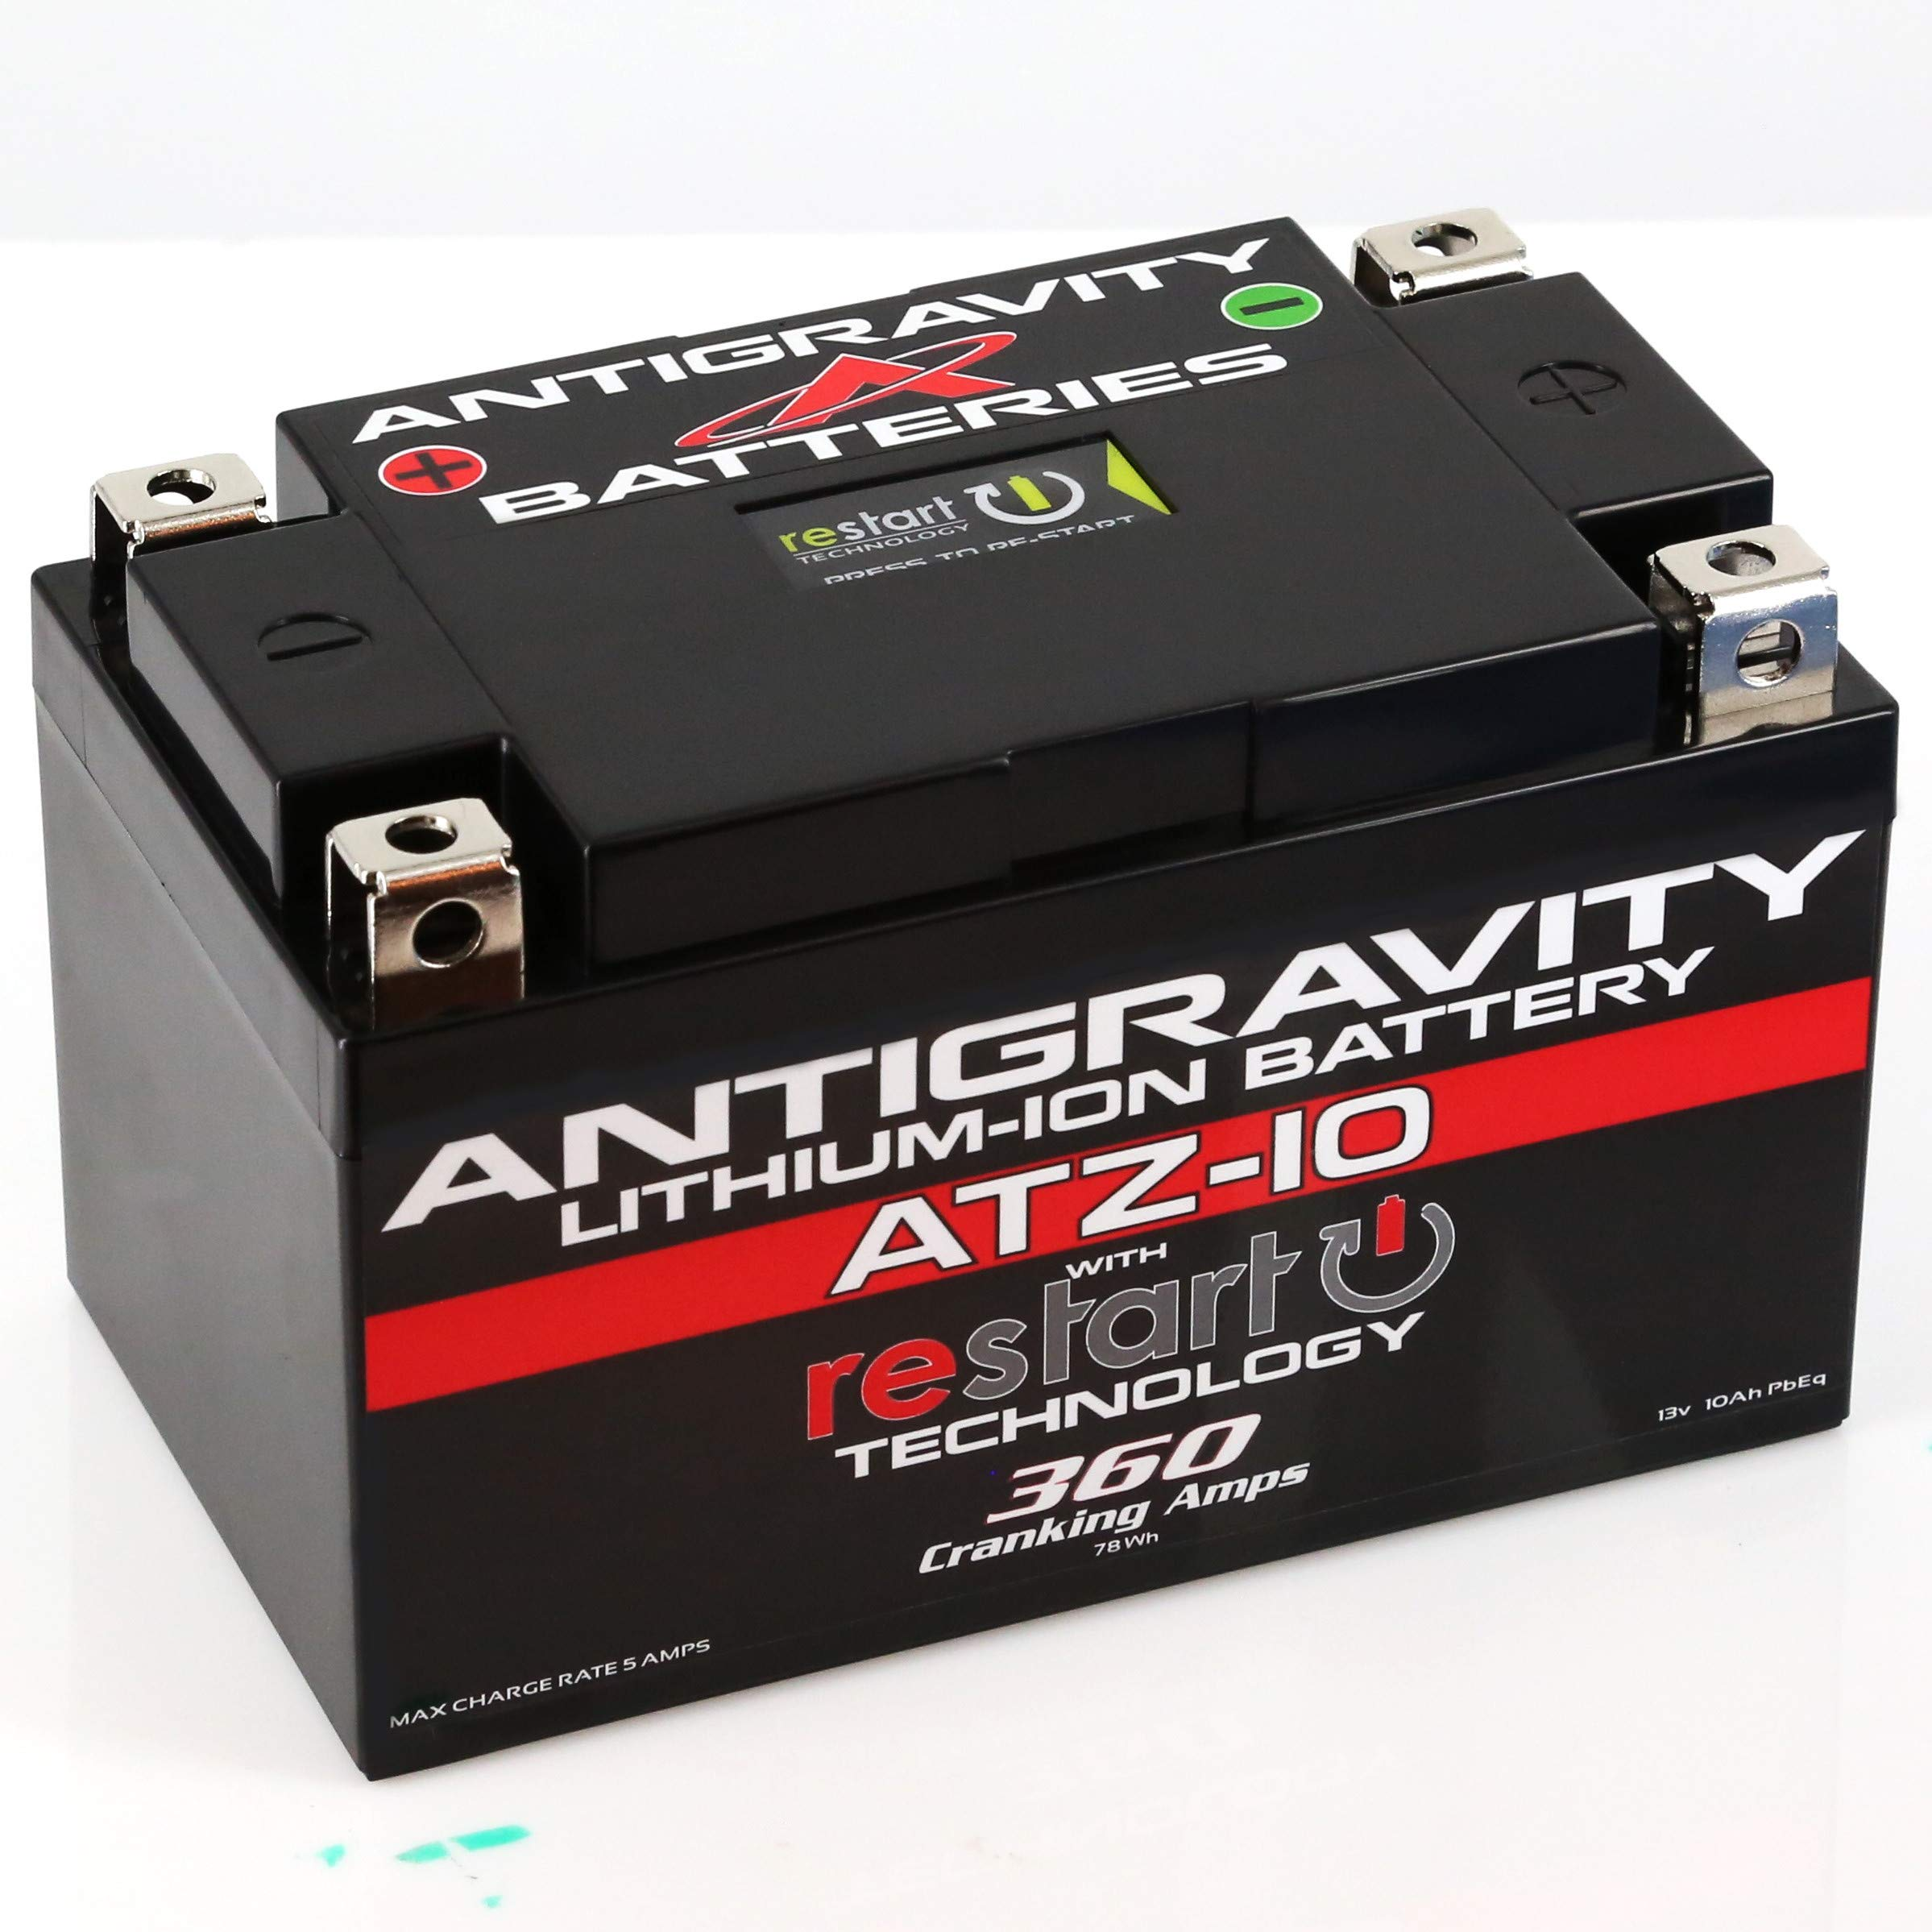 Antigravity ATZ-10-RS Lithium RE-START Battery, Replace YTZ10, YTX9, others